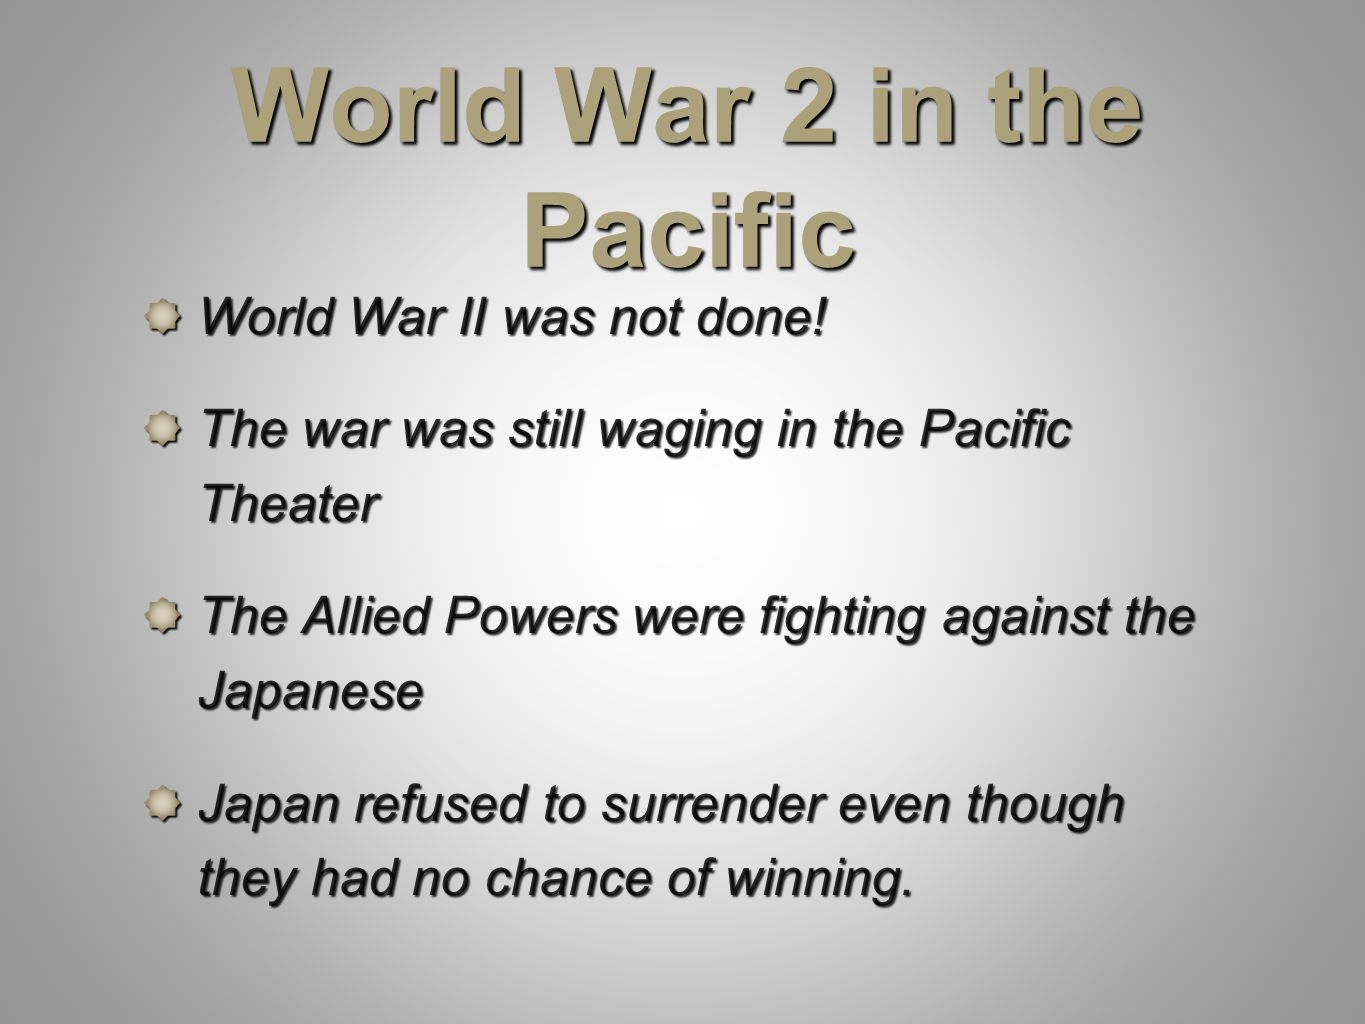 World War 2 in the Pacific World War II was not done.